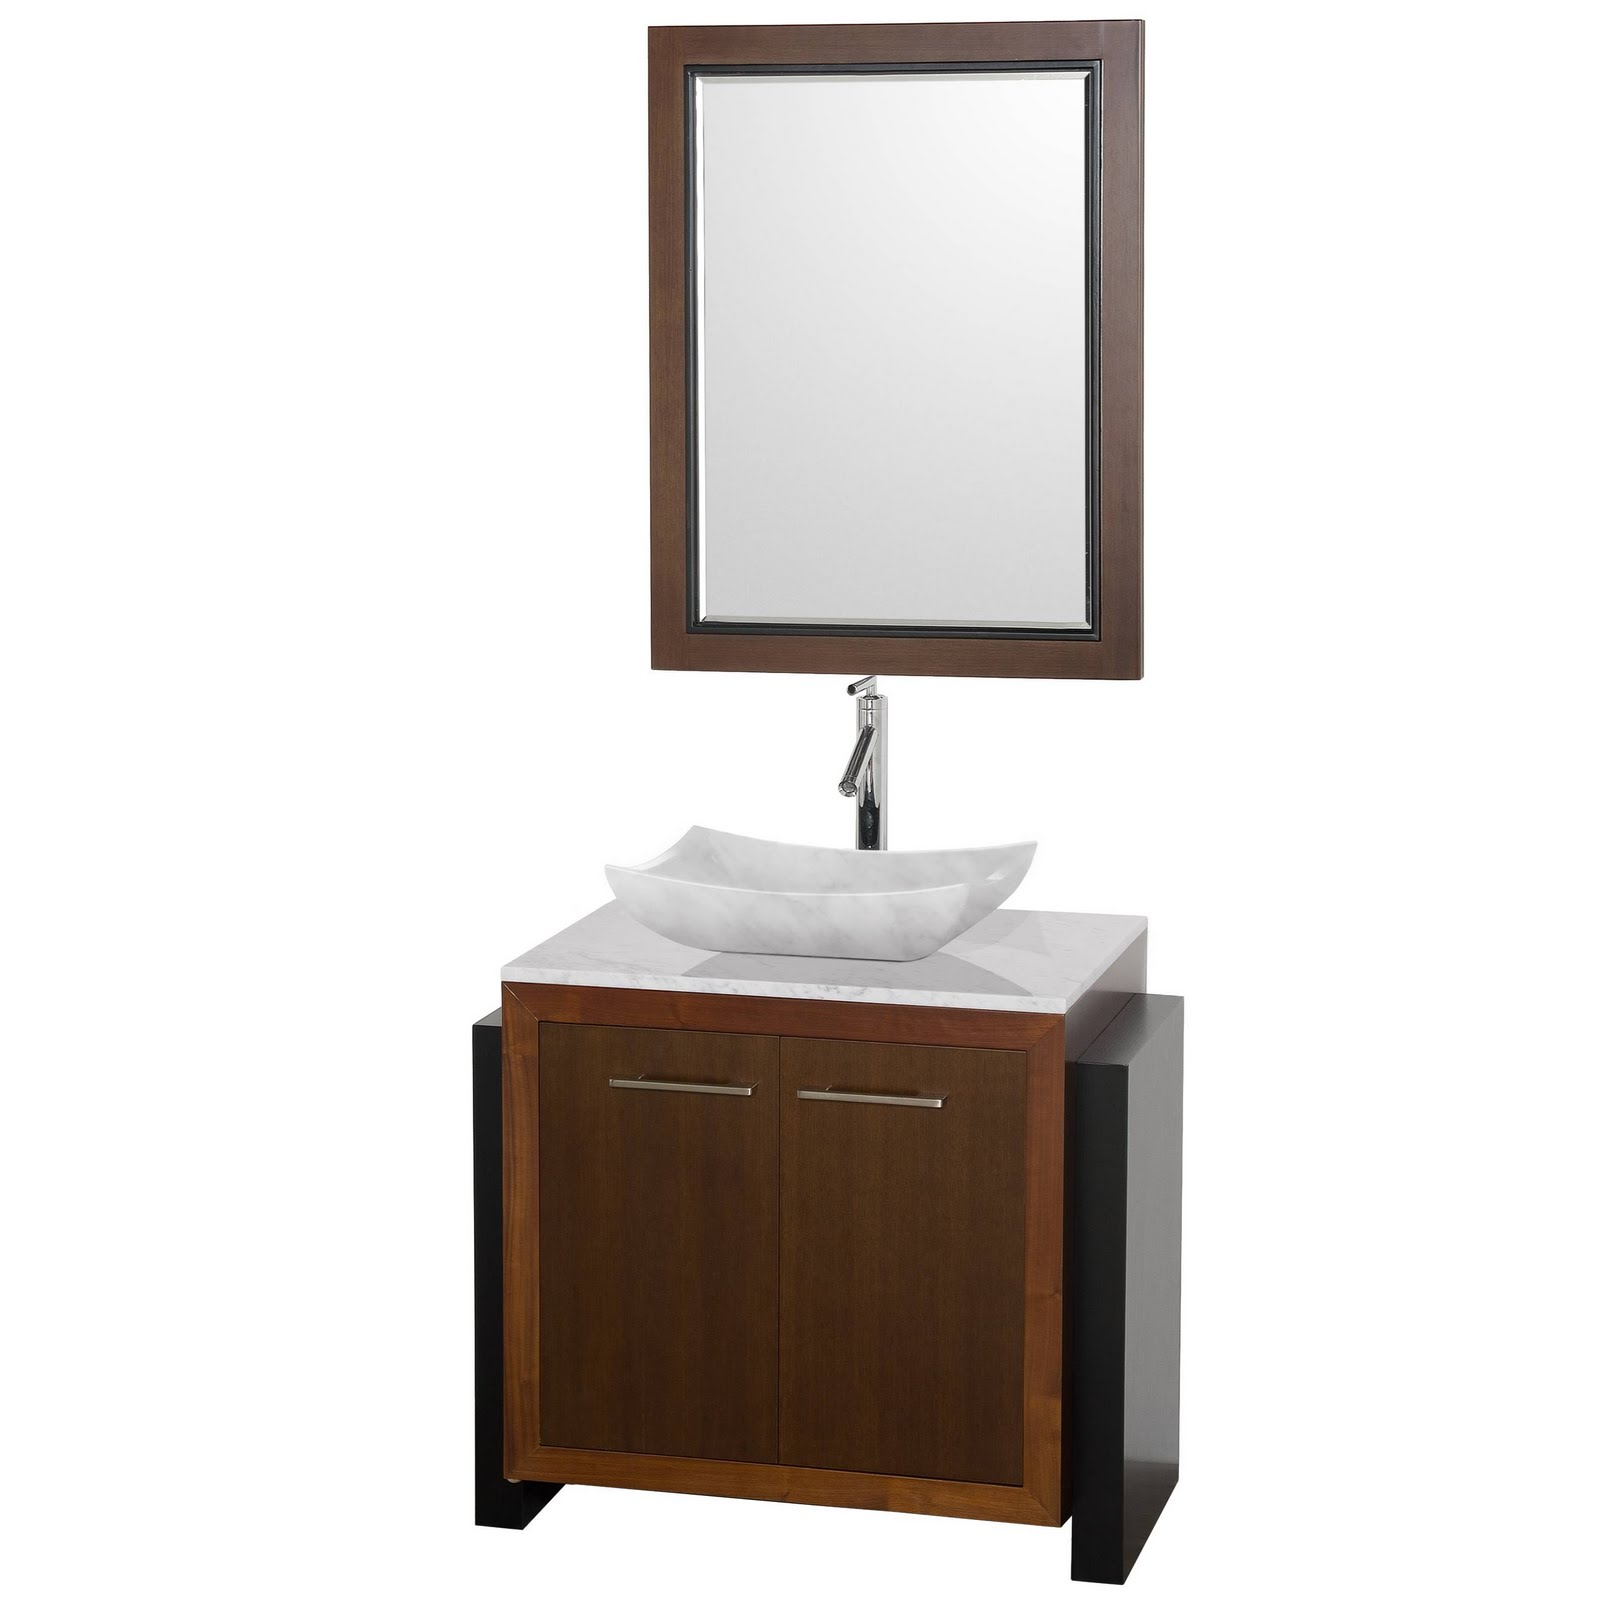 Image Result For Luxury Bath Fixtures New York City